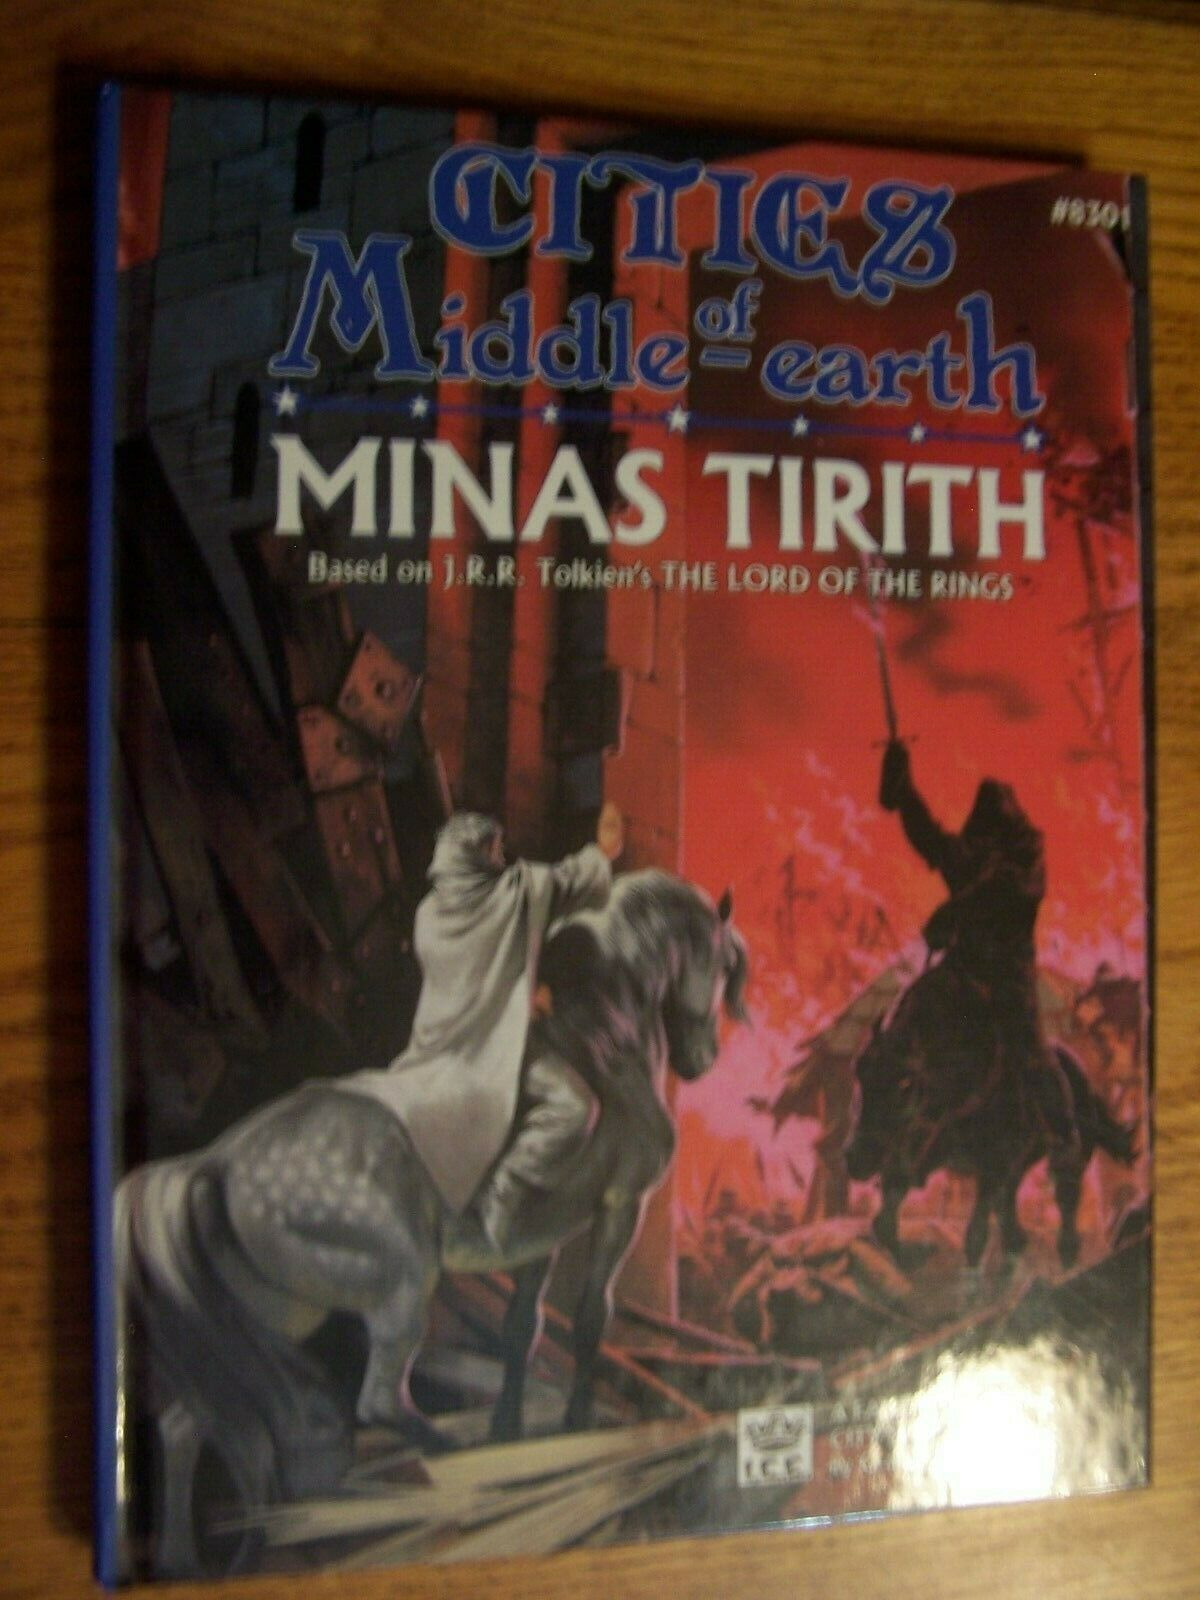 ICE Cities of Middle-Earth Minas Tirith hardcover I.C.E. 8301 MERP 1988